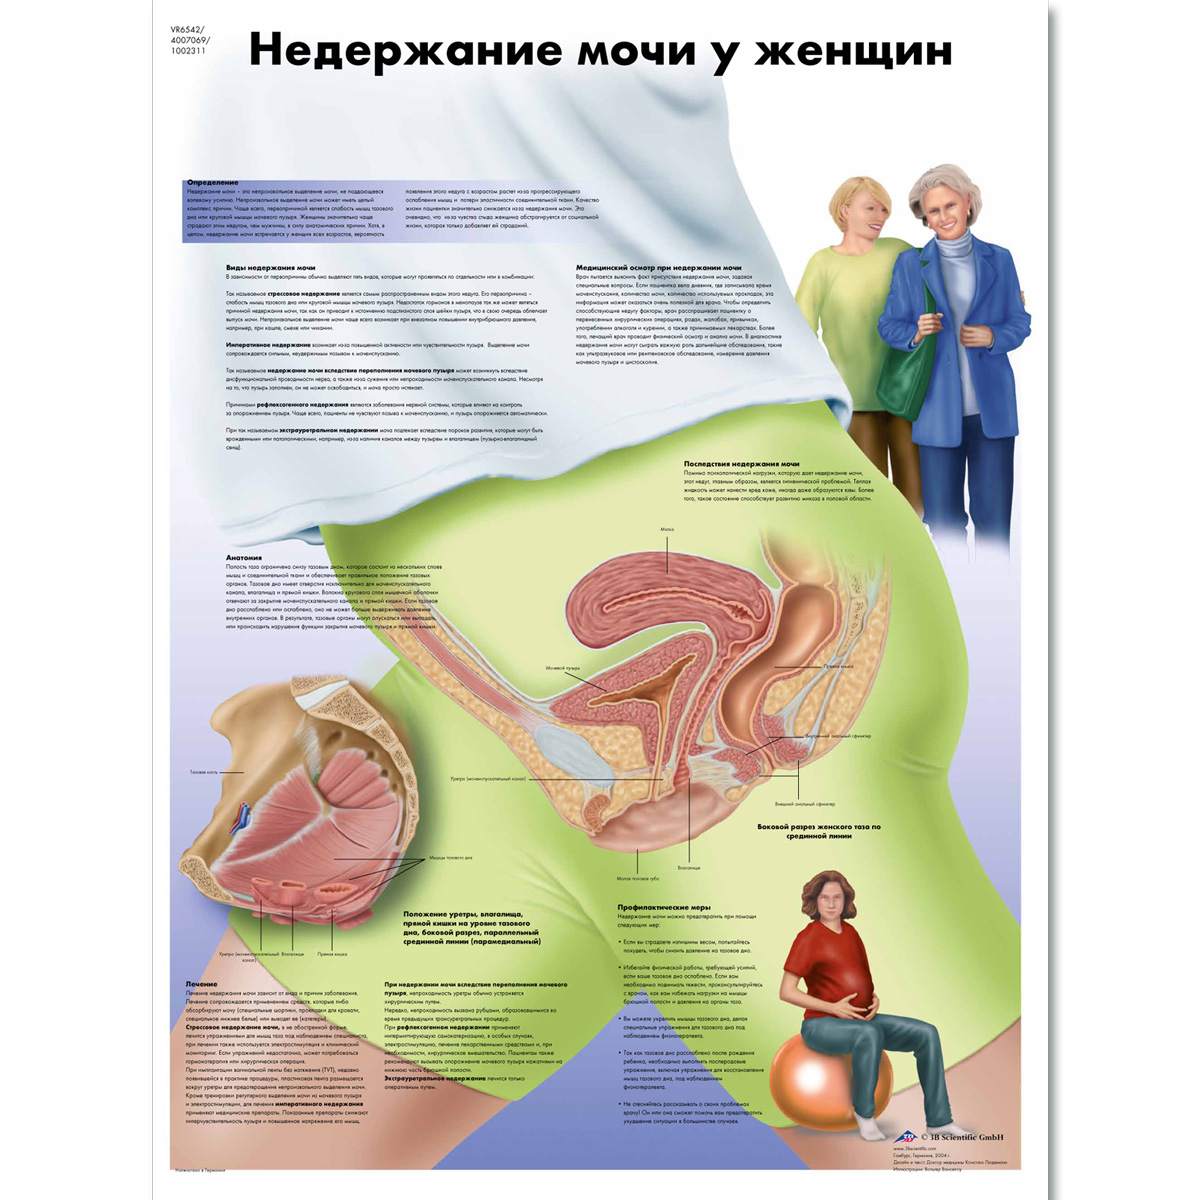 Female urinary incontinence chart 1002311 vr6542l zvr6542l female urinary incontinence chart geenschuldenfo Images